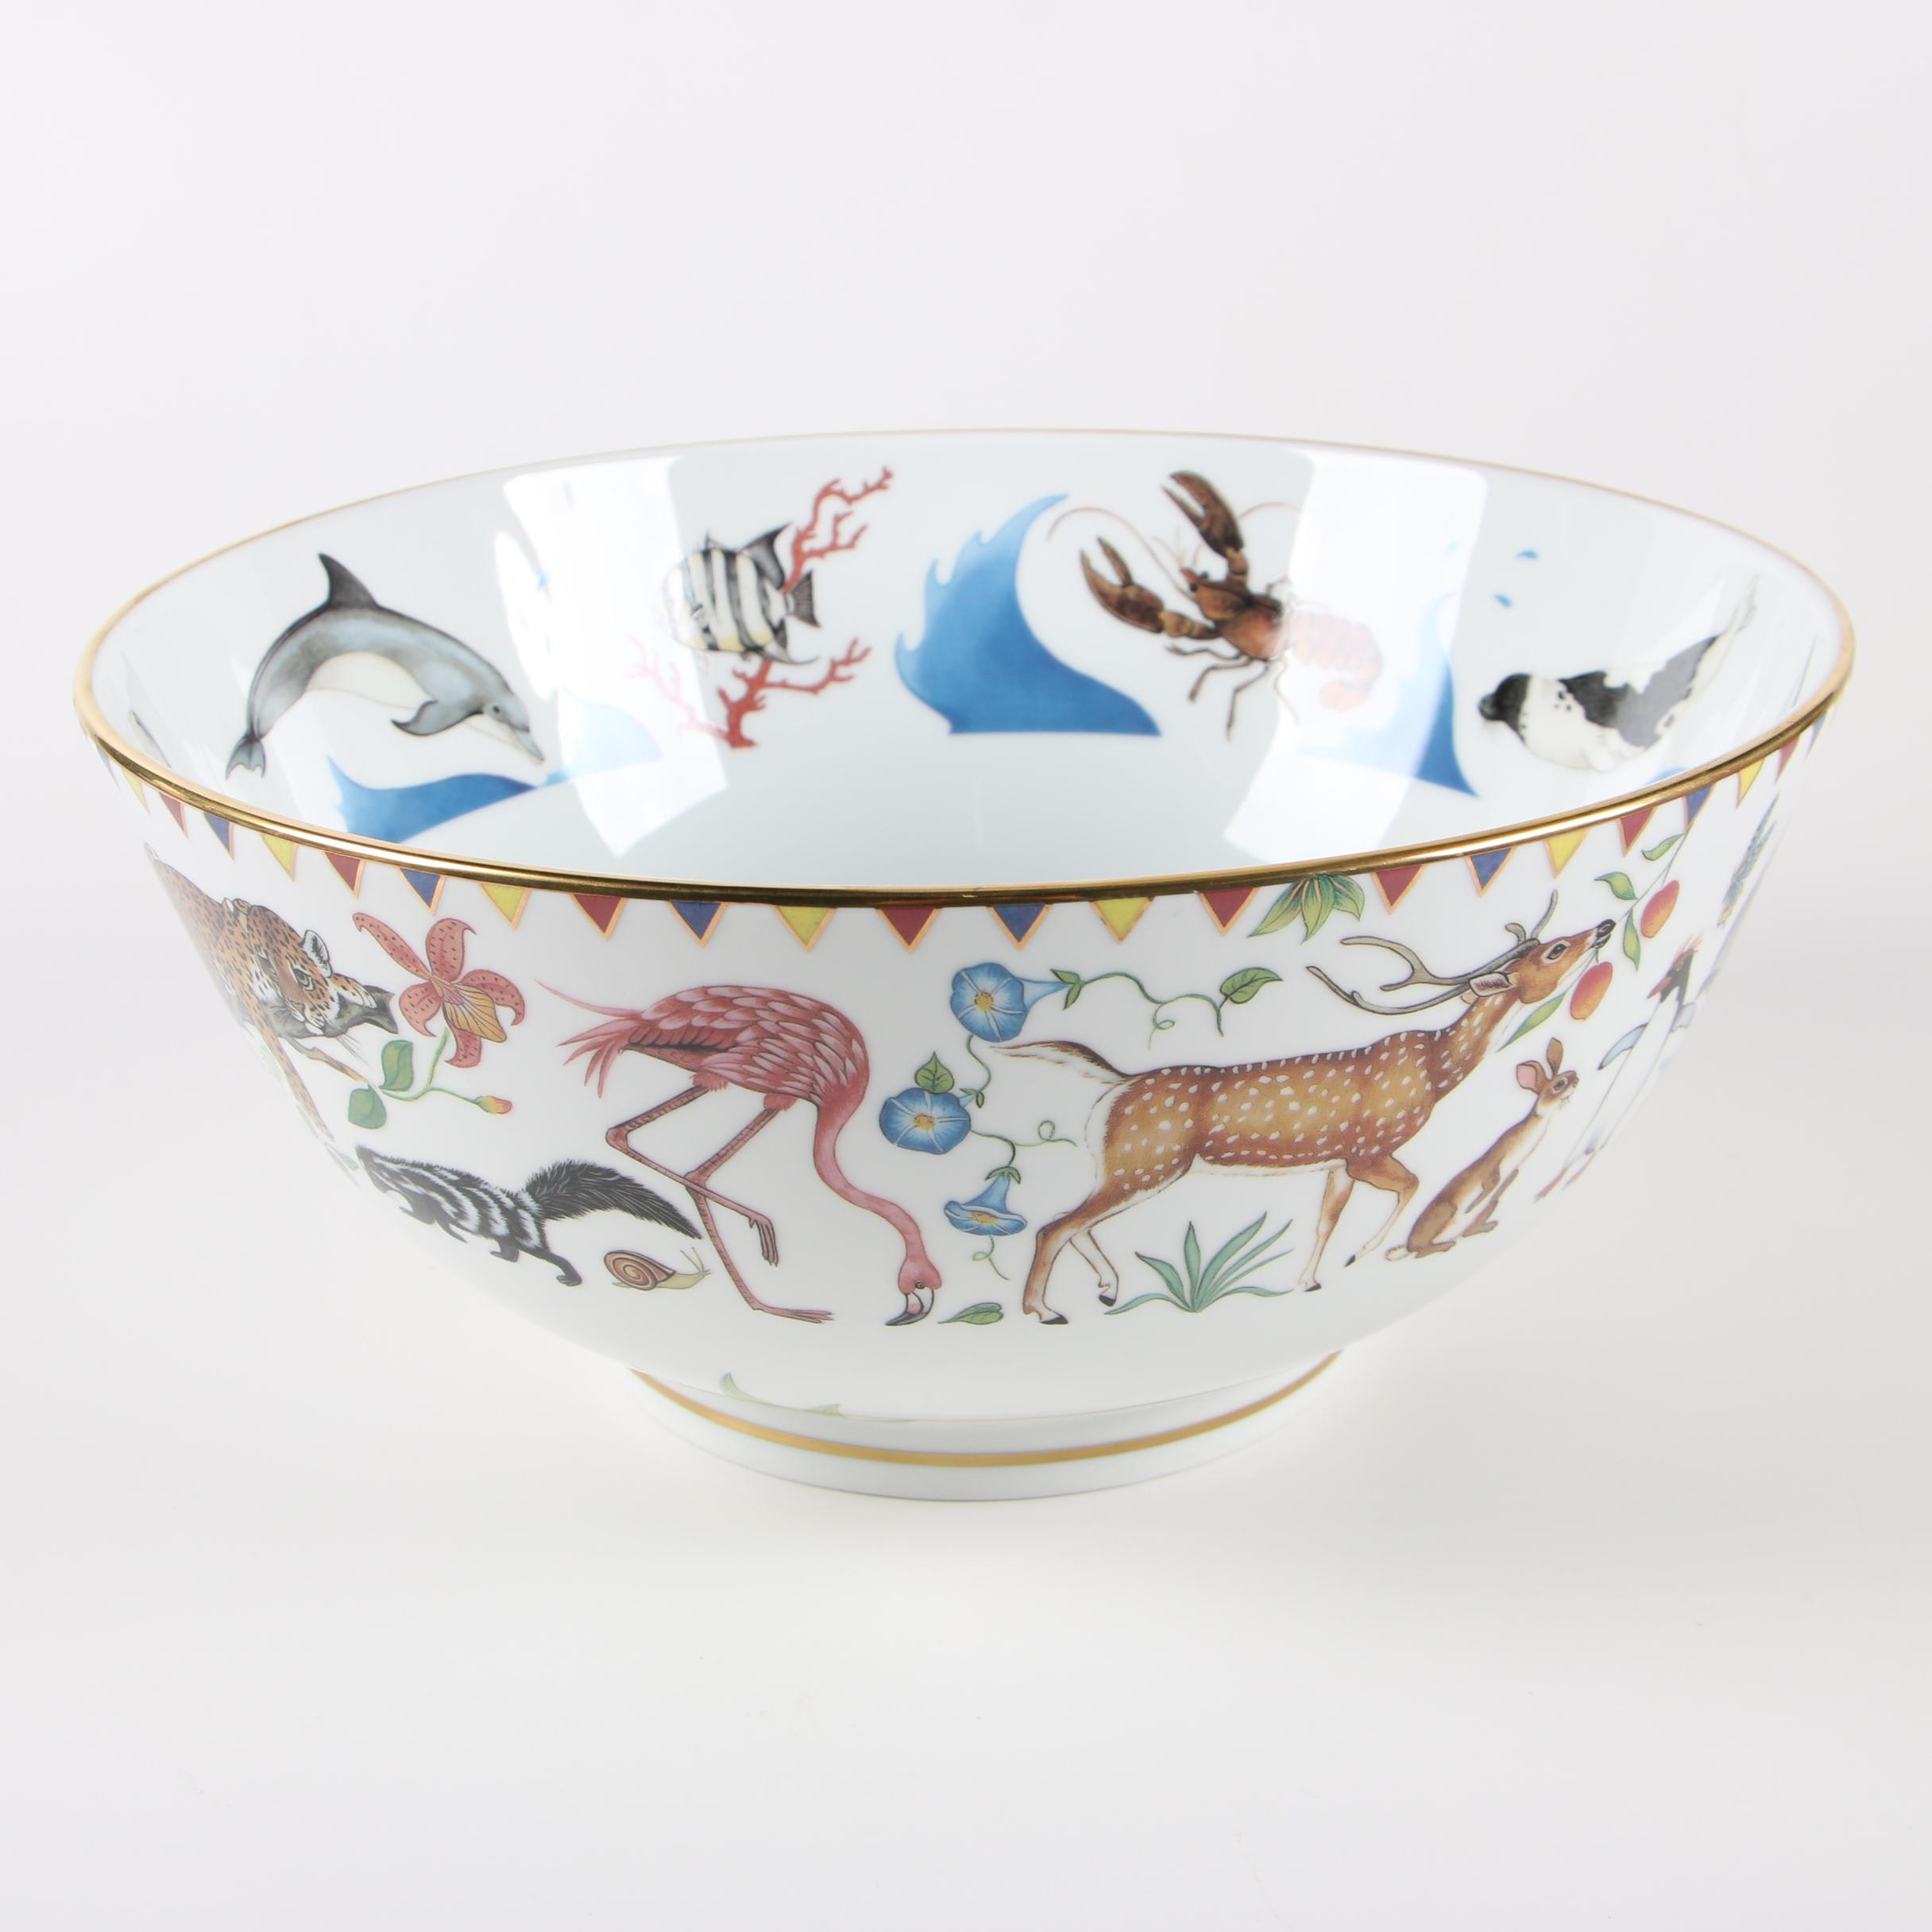 "Lynn Chase Designs ""Harmony"" Porcelain Centerpiece Bowl with 24K Gold Details"